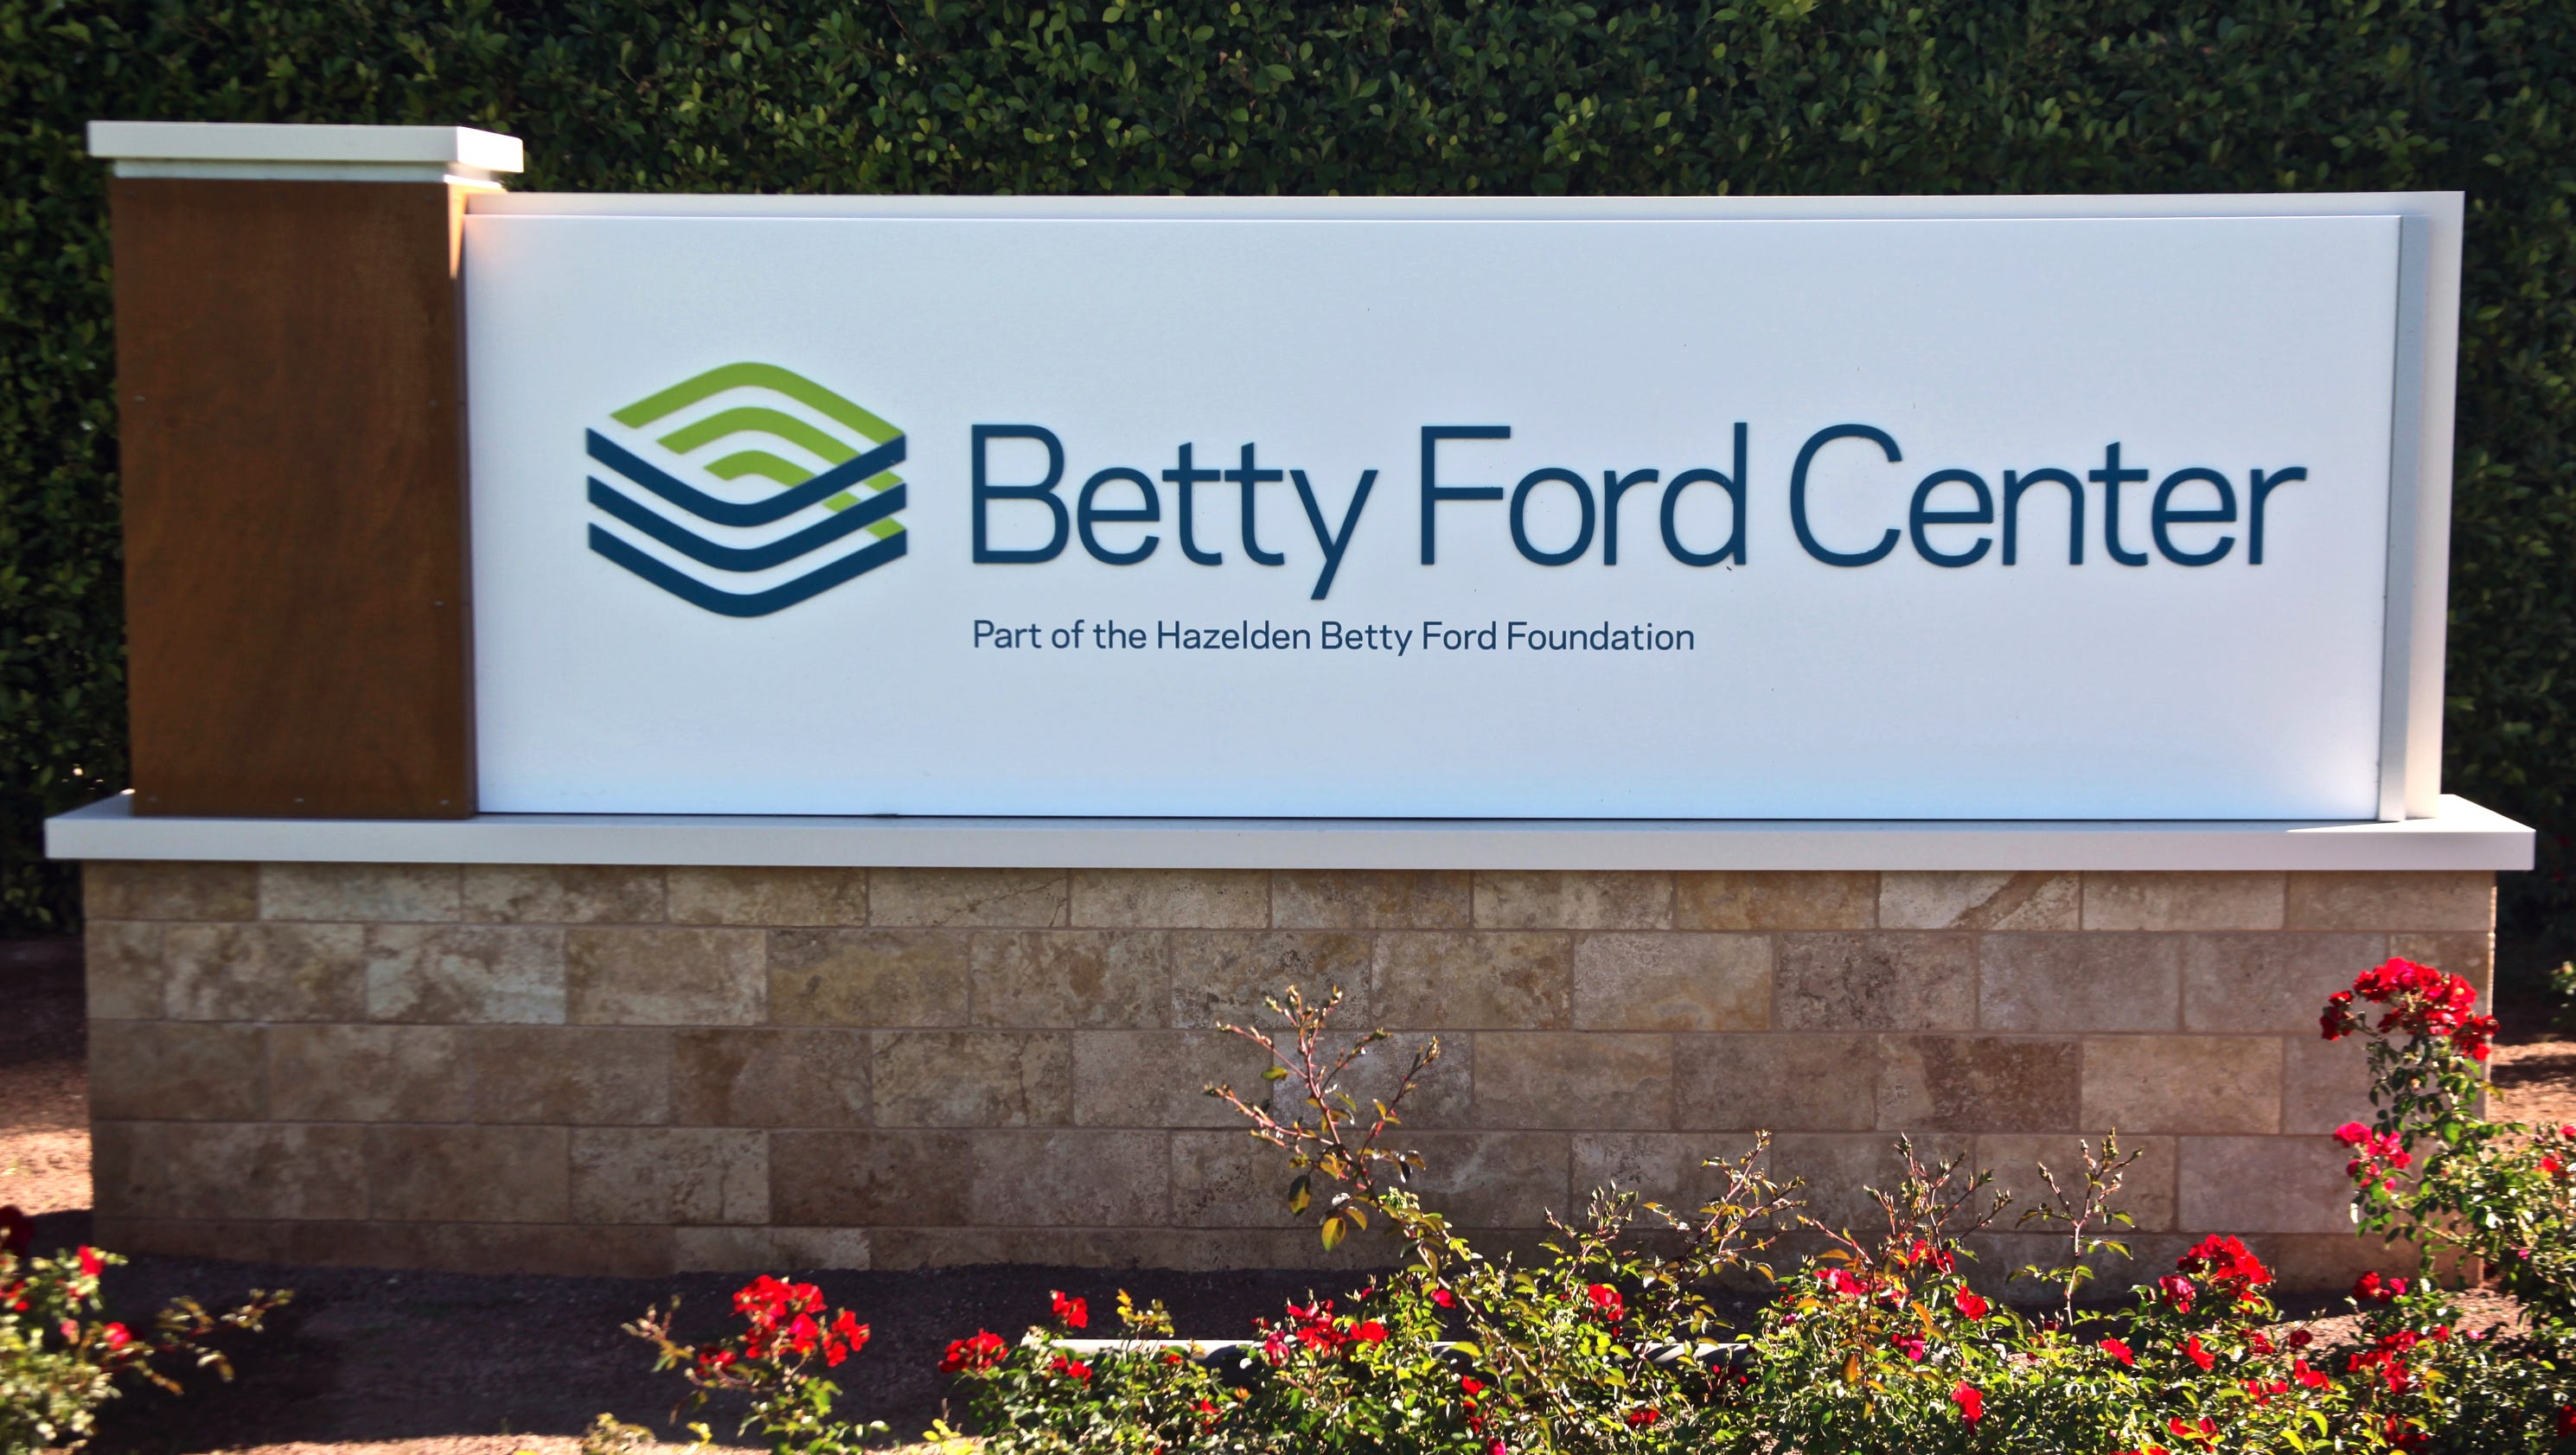 Palm Springs Ford >> Betty Ford Center cuts staff as part of Hazelden plan